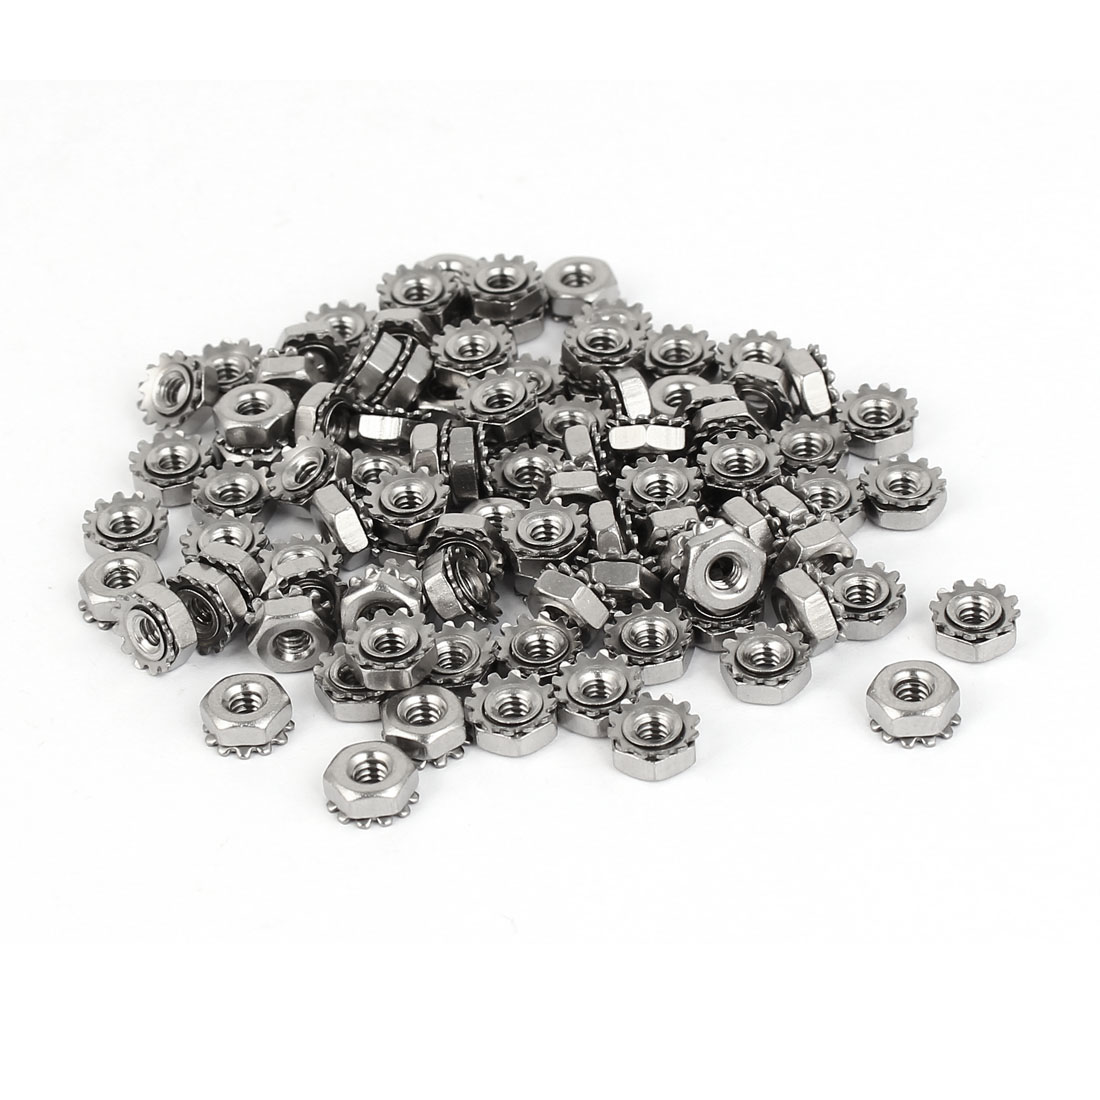 4#-40 304 Stainless Steel Female Thread Kep Hex Head Lock Nut 100pcs